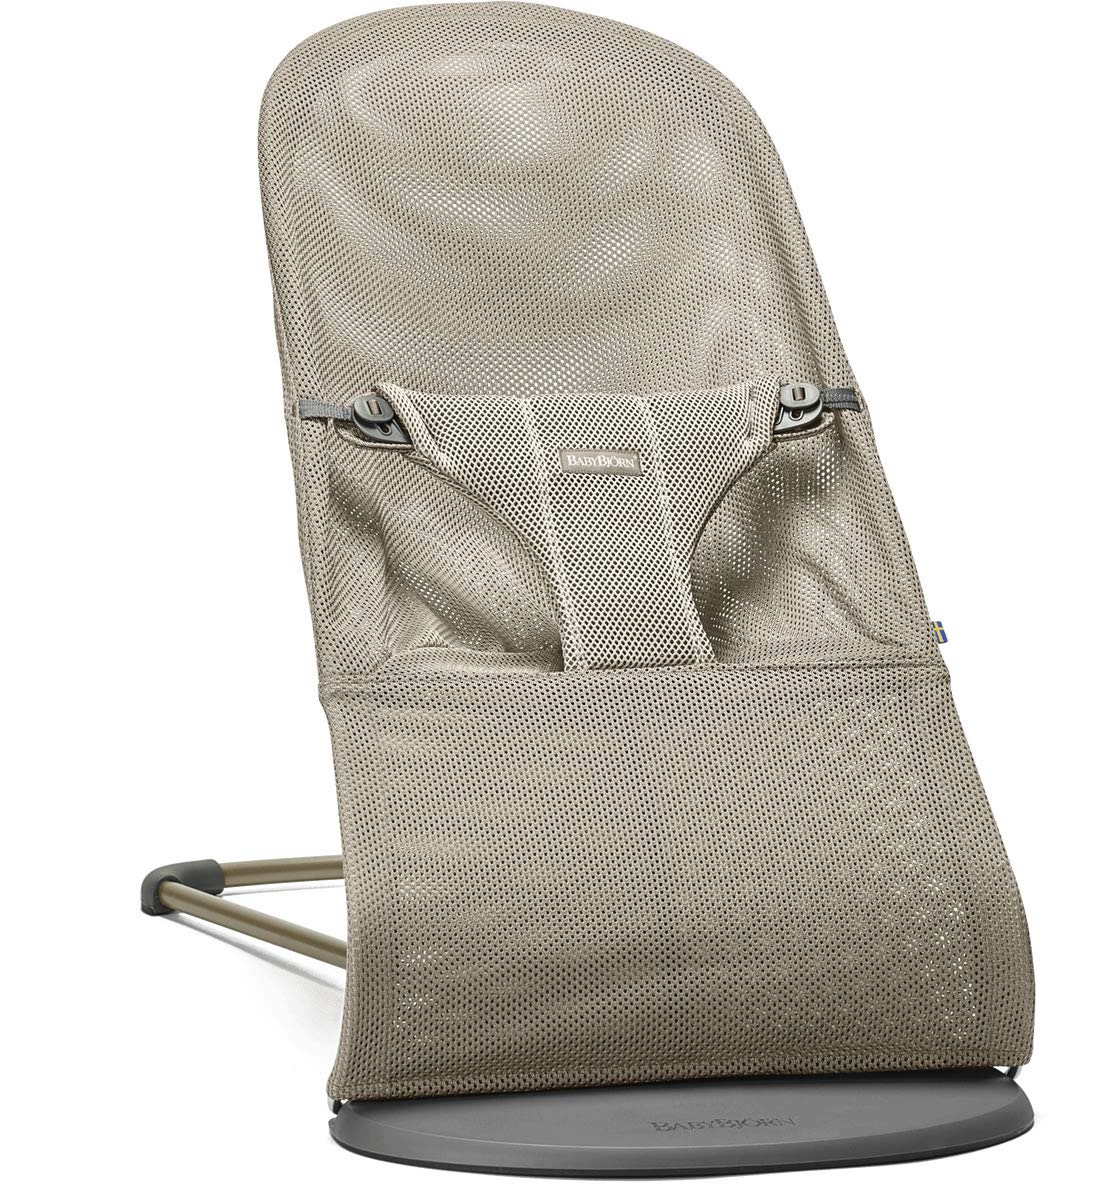 BABYBJORN Bouncer Bliss, Mesh, Greige, One Size BABYBJÖRN 006002US